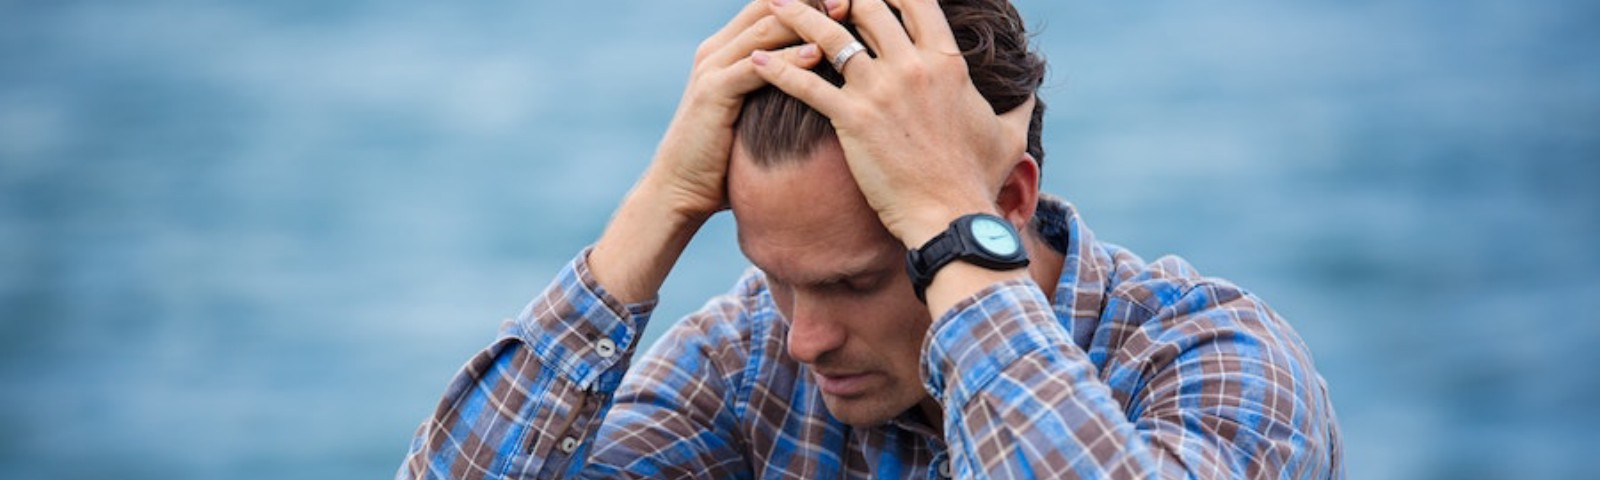 Frustrated man with his hands on his head